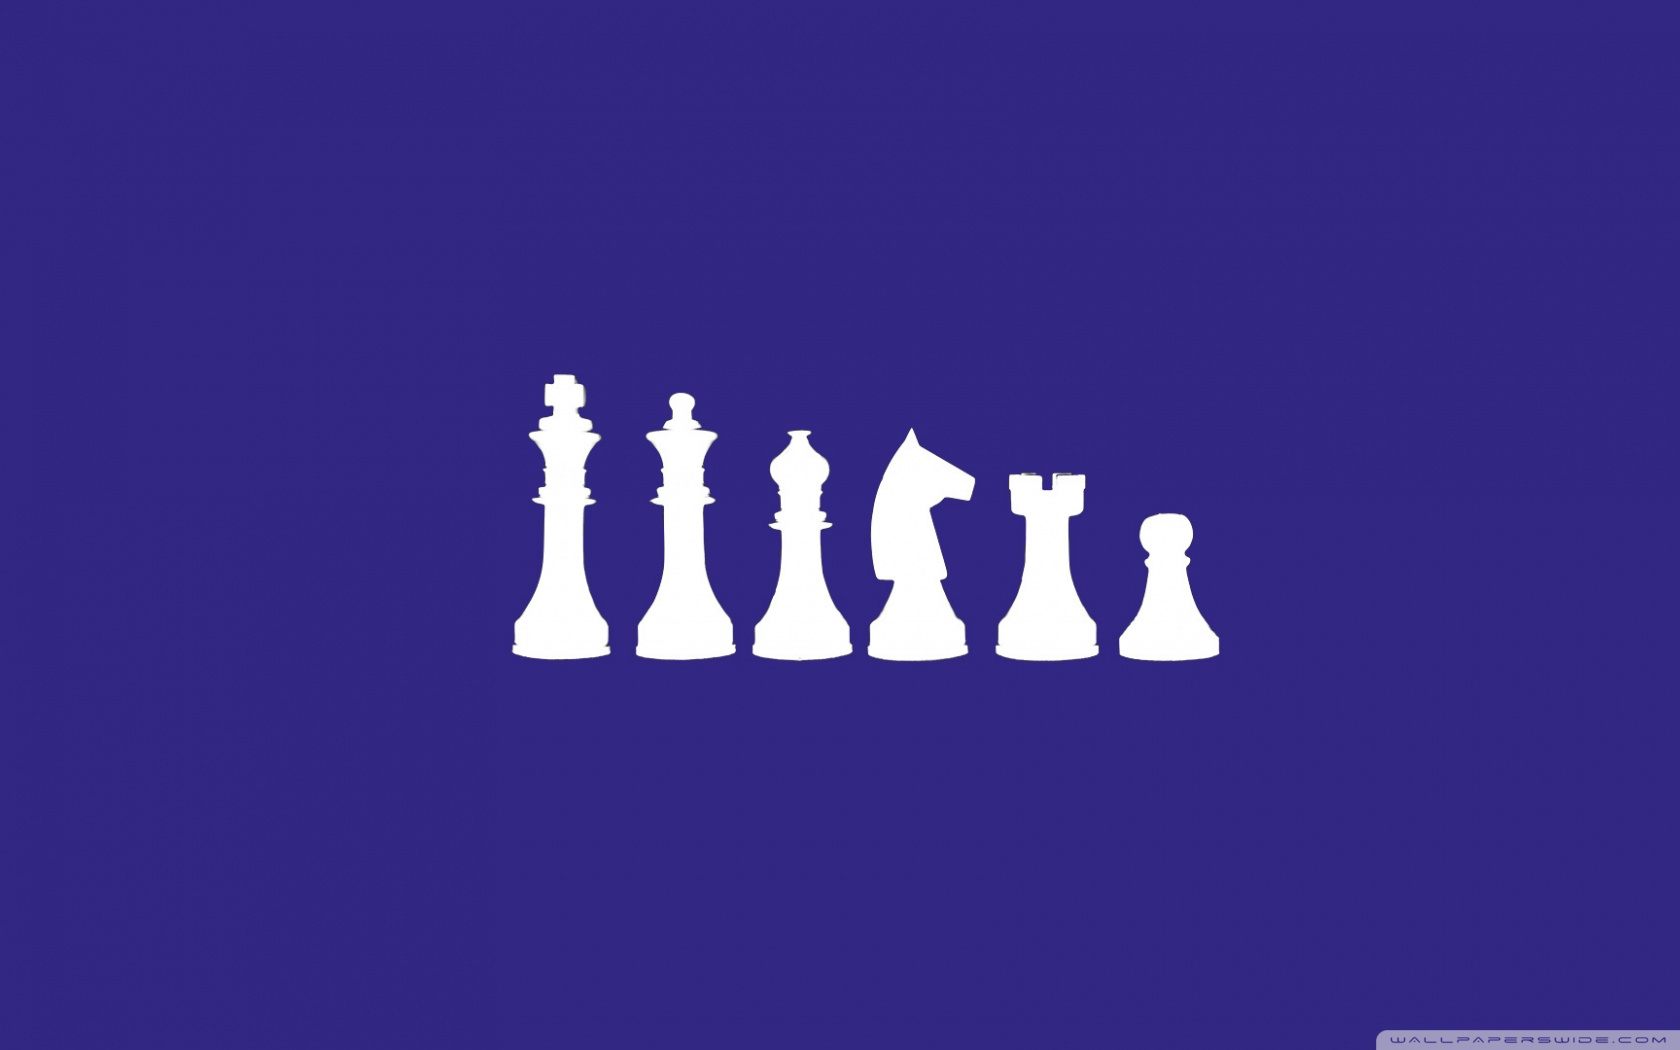 Free Chess Pieces phone wallpaper by jbeard3